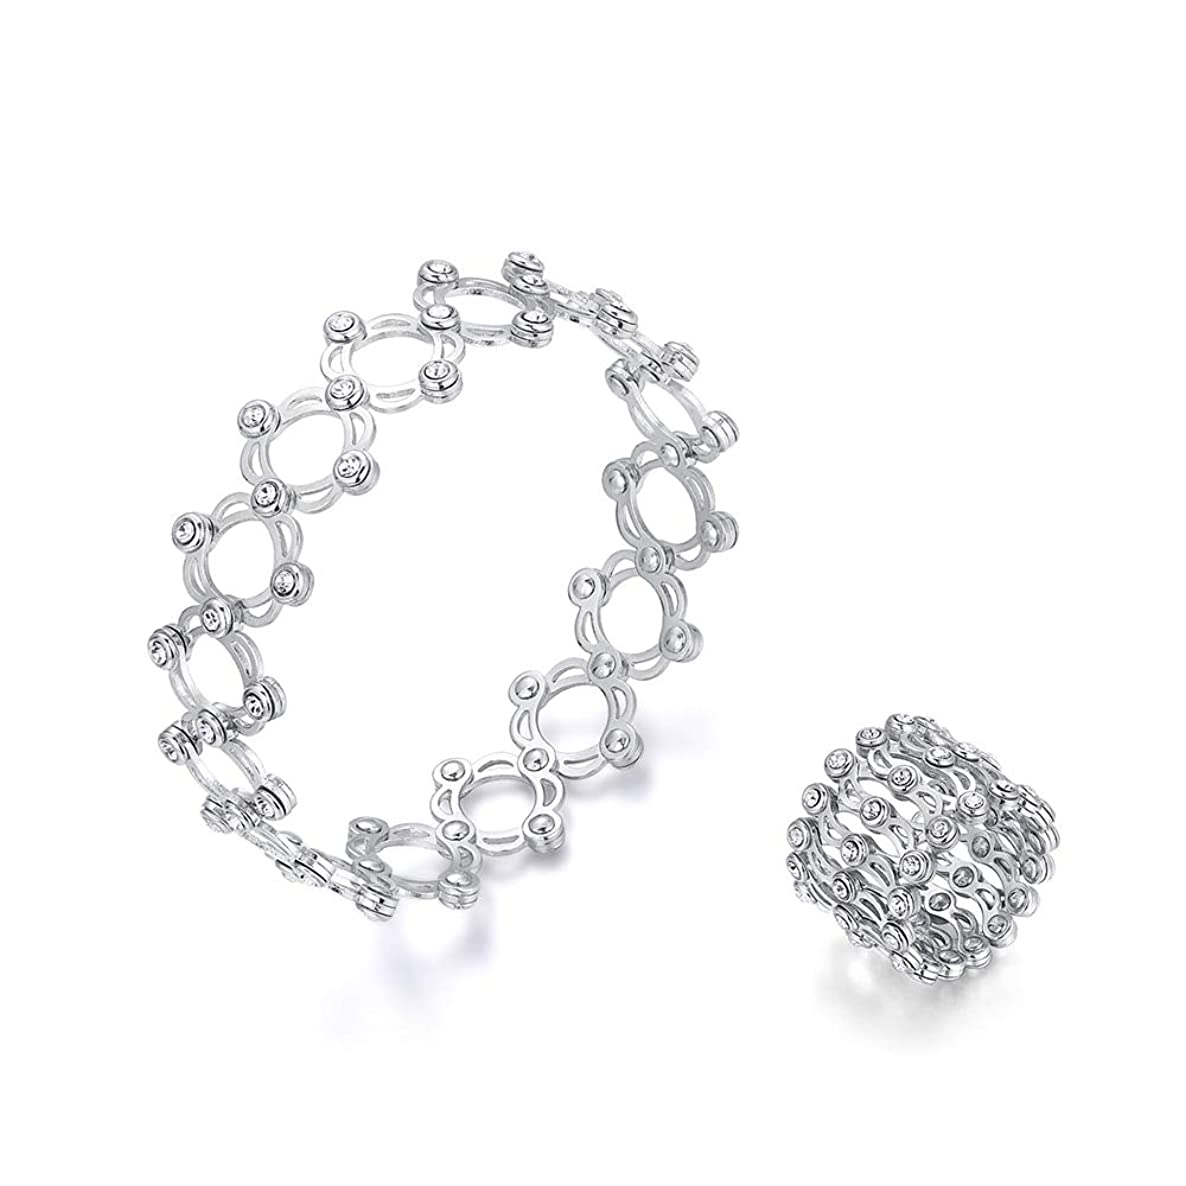 Stainless Steel Adjustable Rings   Crystal Magic Rings   Change Into Bangle Hollow Dual Use Deformation Rings   for Women